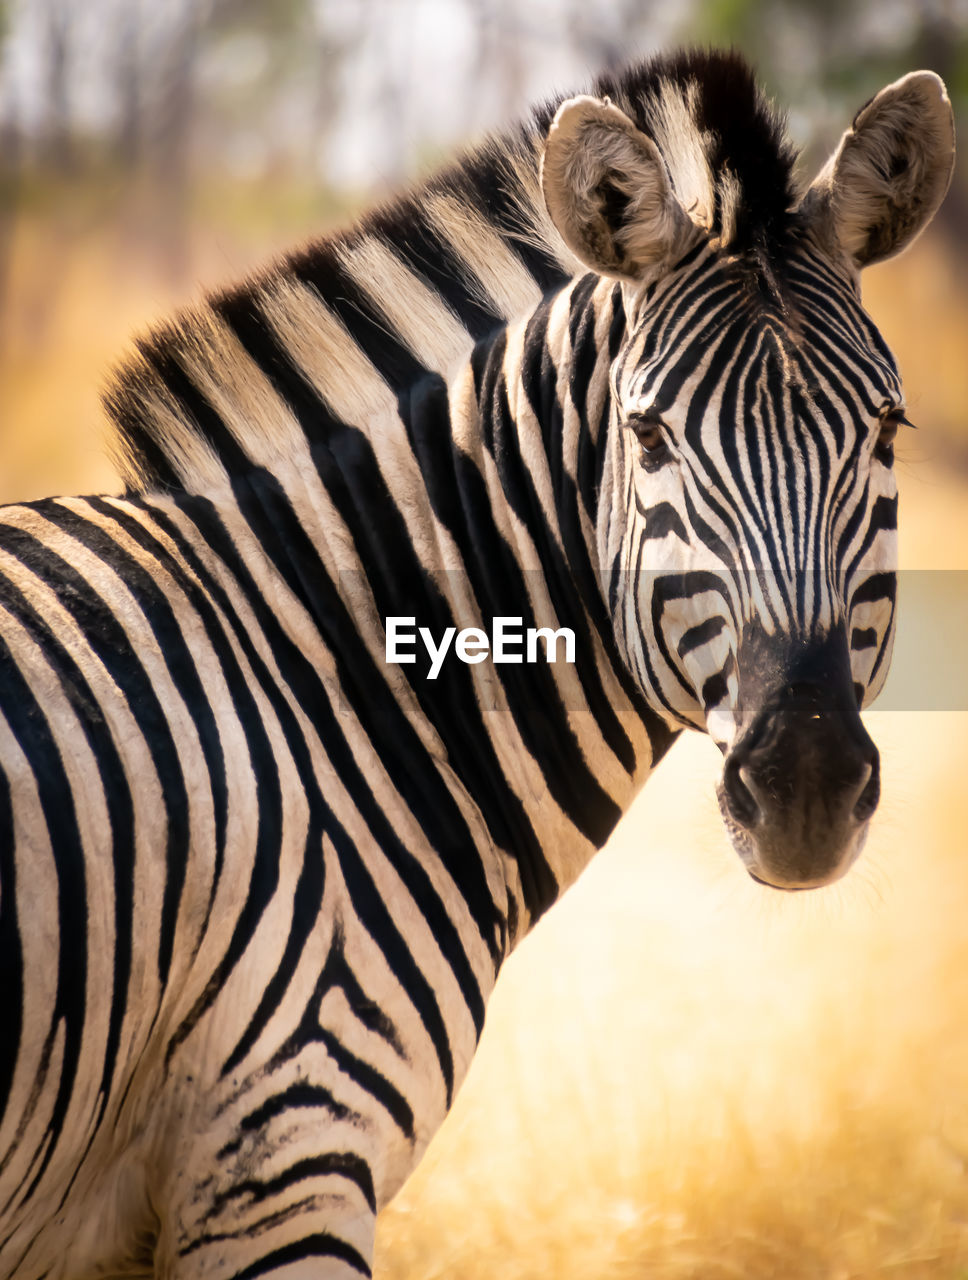 animal, animal themes, animal wildlife, striped, mammal, animals in the wild, zebra, one animal, animal markings, vertebrate, focus on foreground, day, no people, close-up, nature, safari, natural pattern, outdoors, animal head, herbivorous